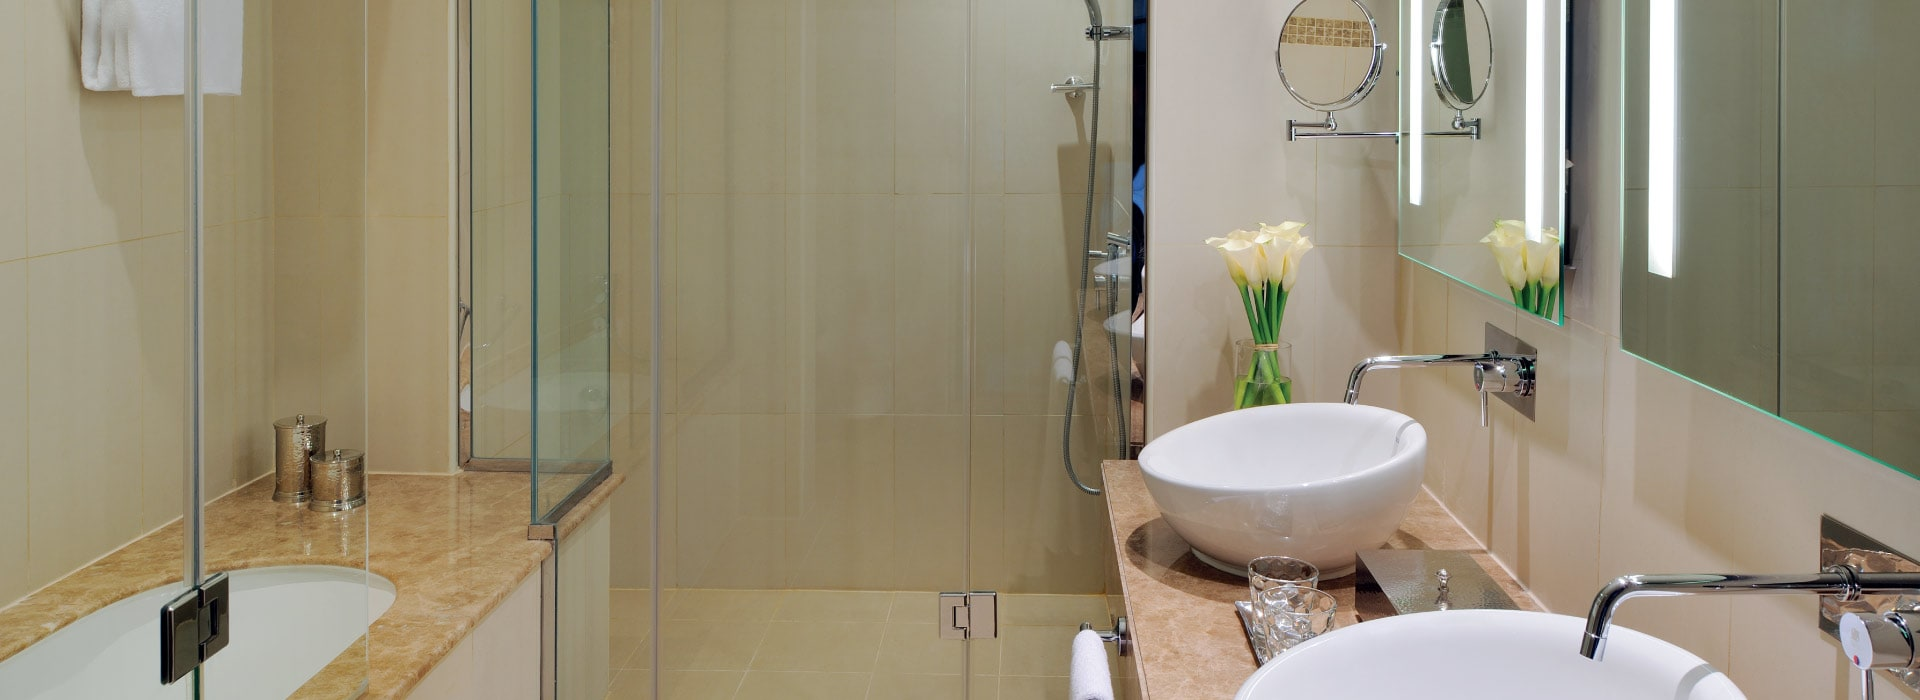 The bathroom of a Junior suite at AVANI Deira